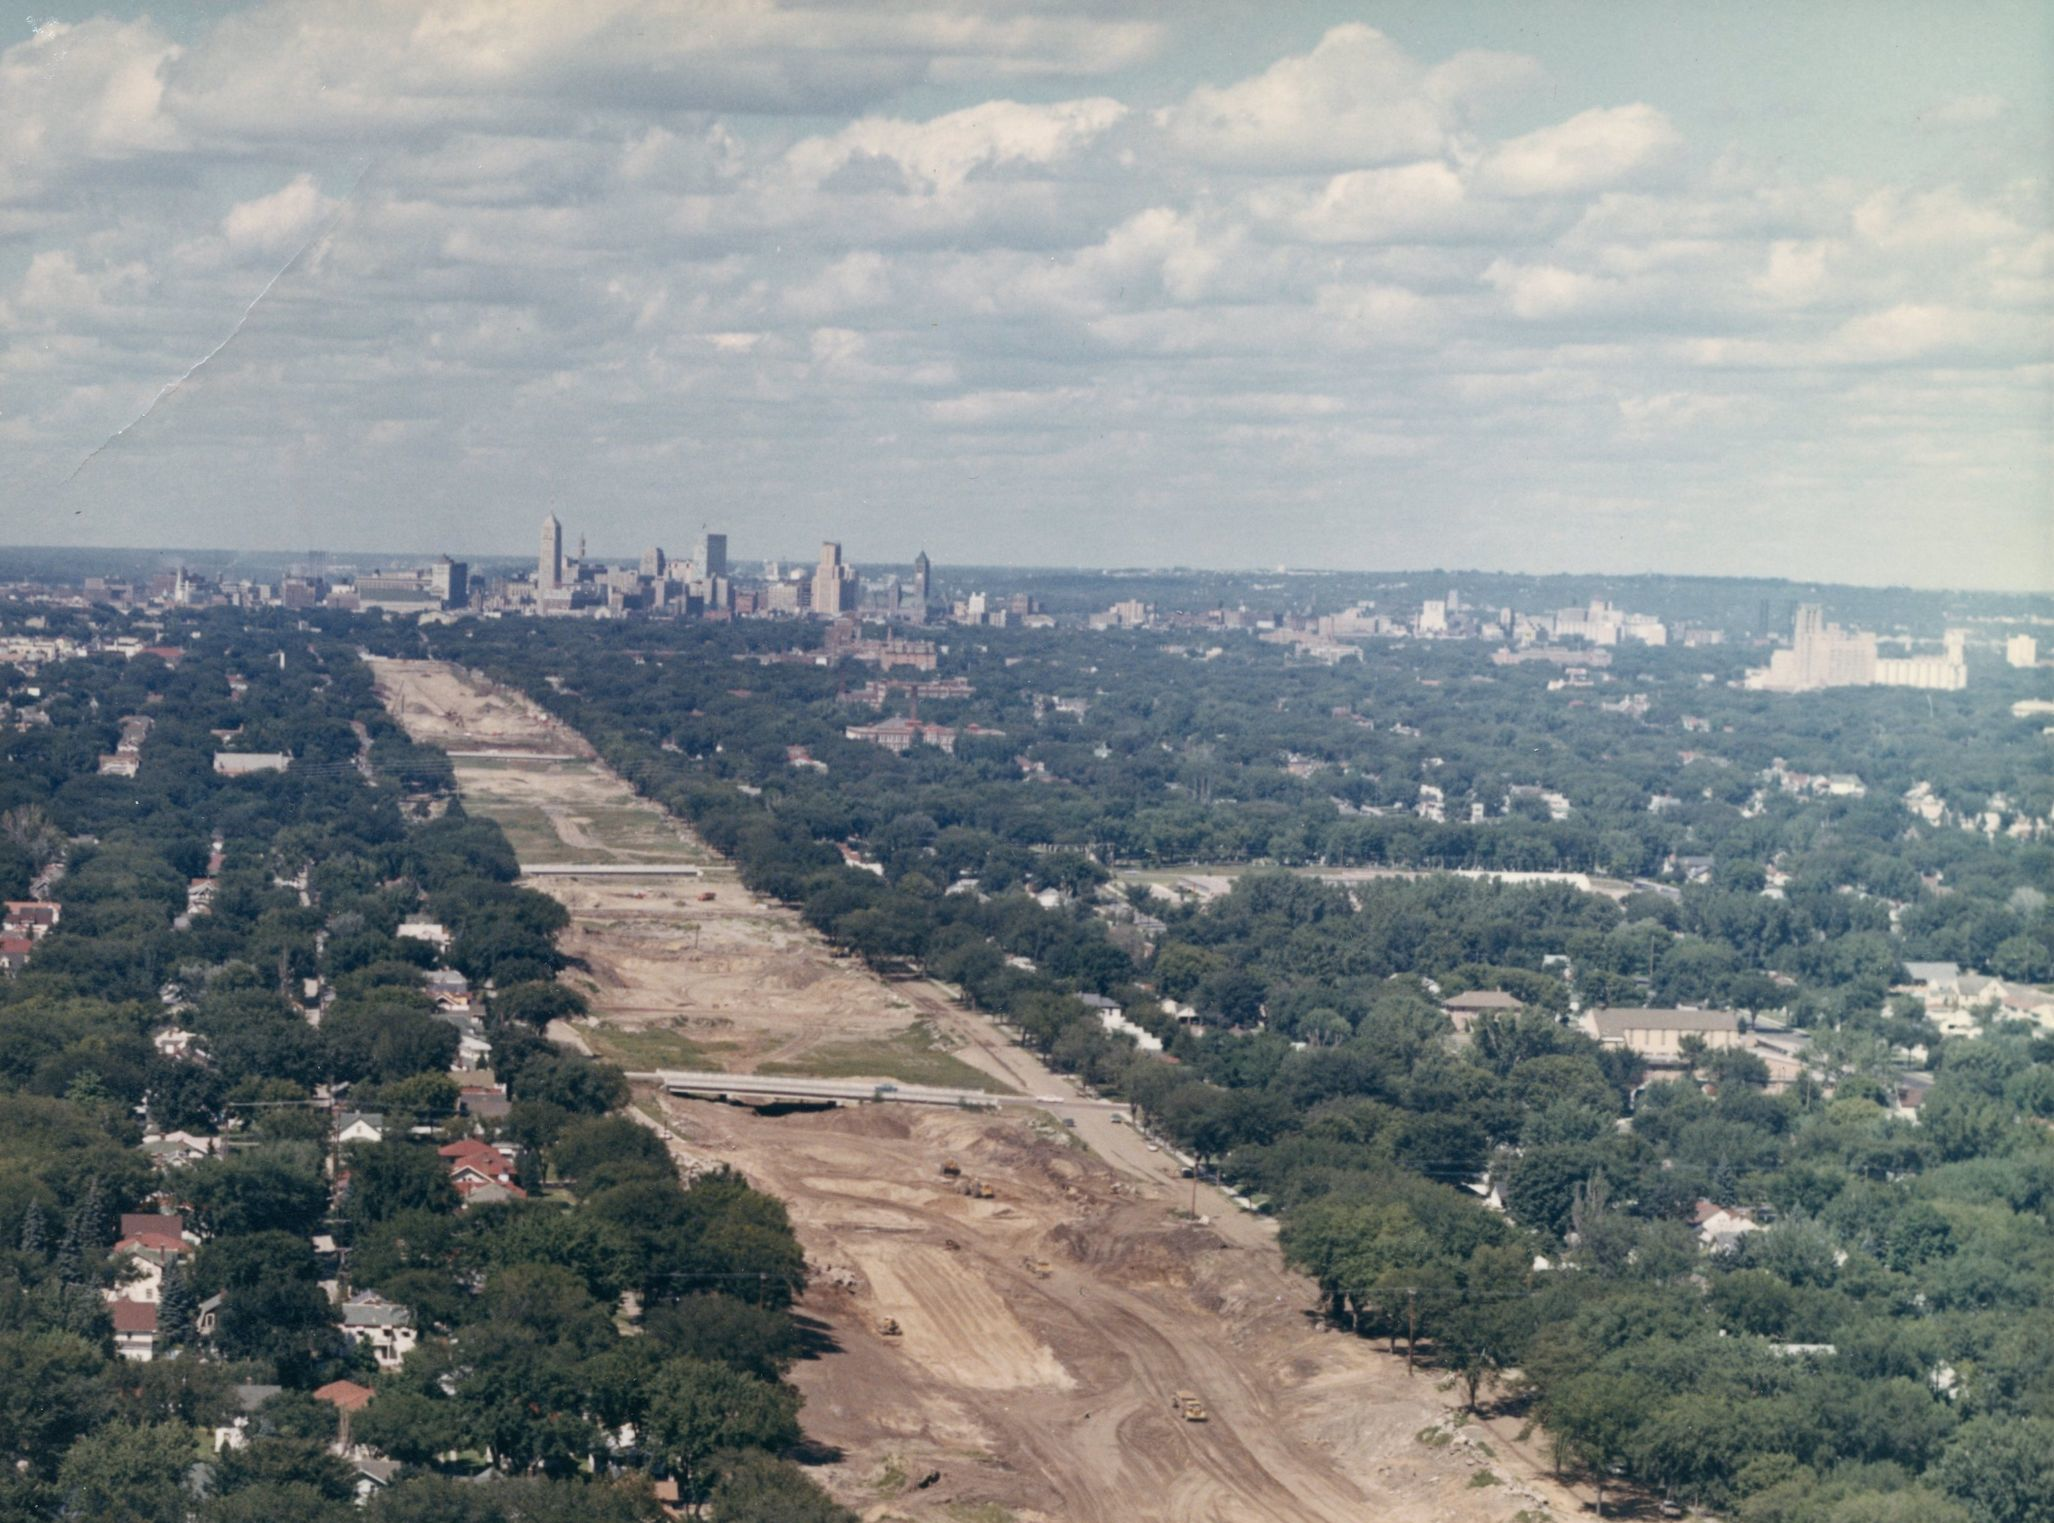 Initial construction of Interstate 35W, entering downtown through South Minneapolis